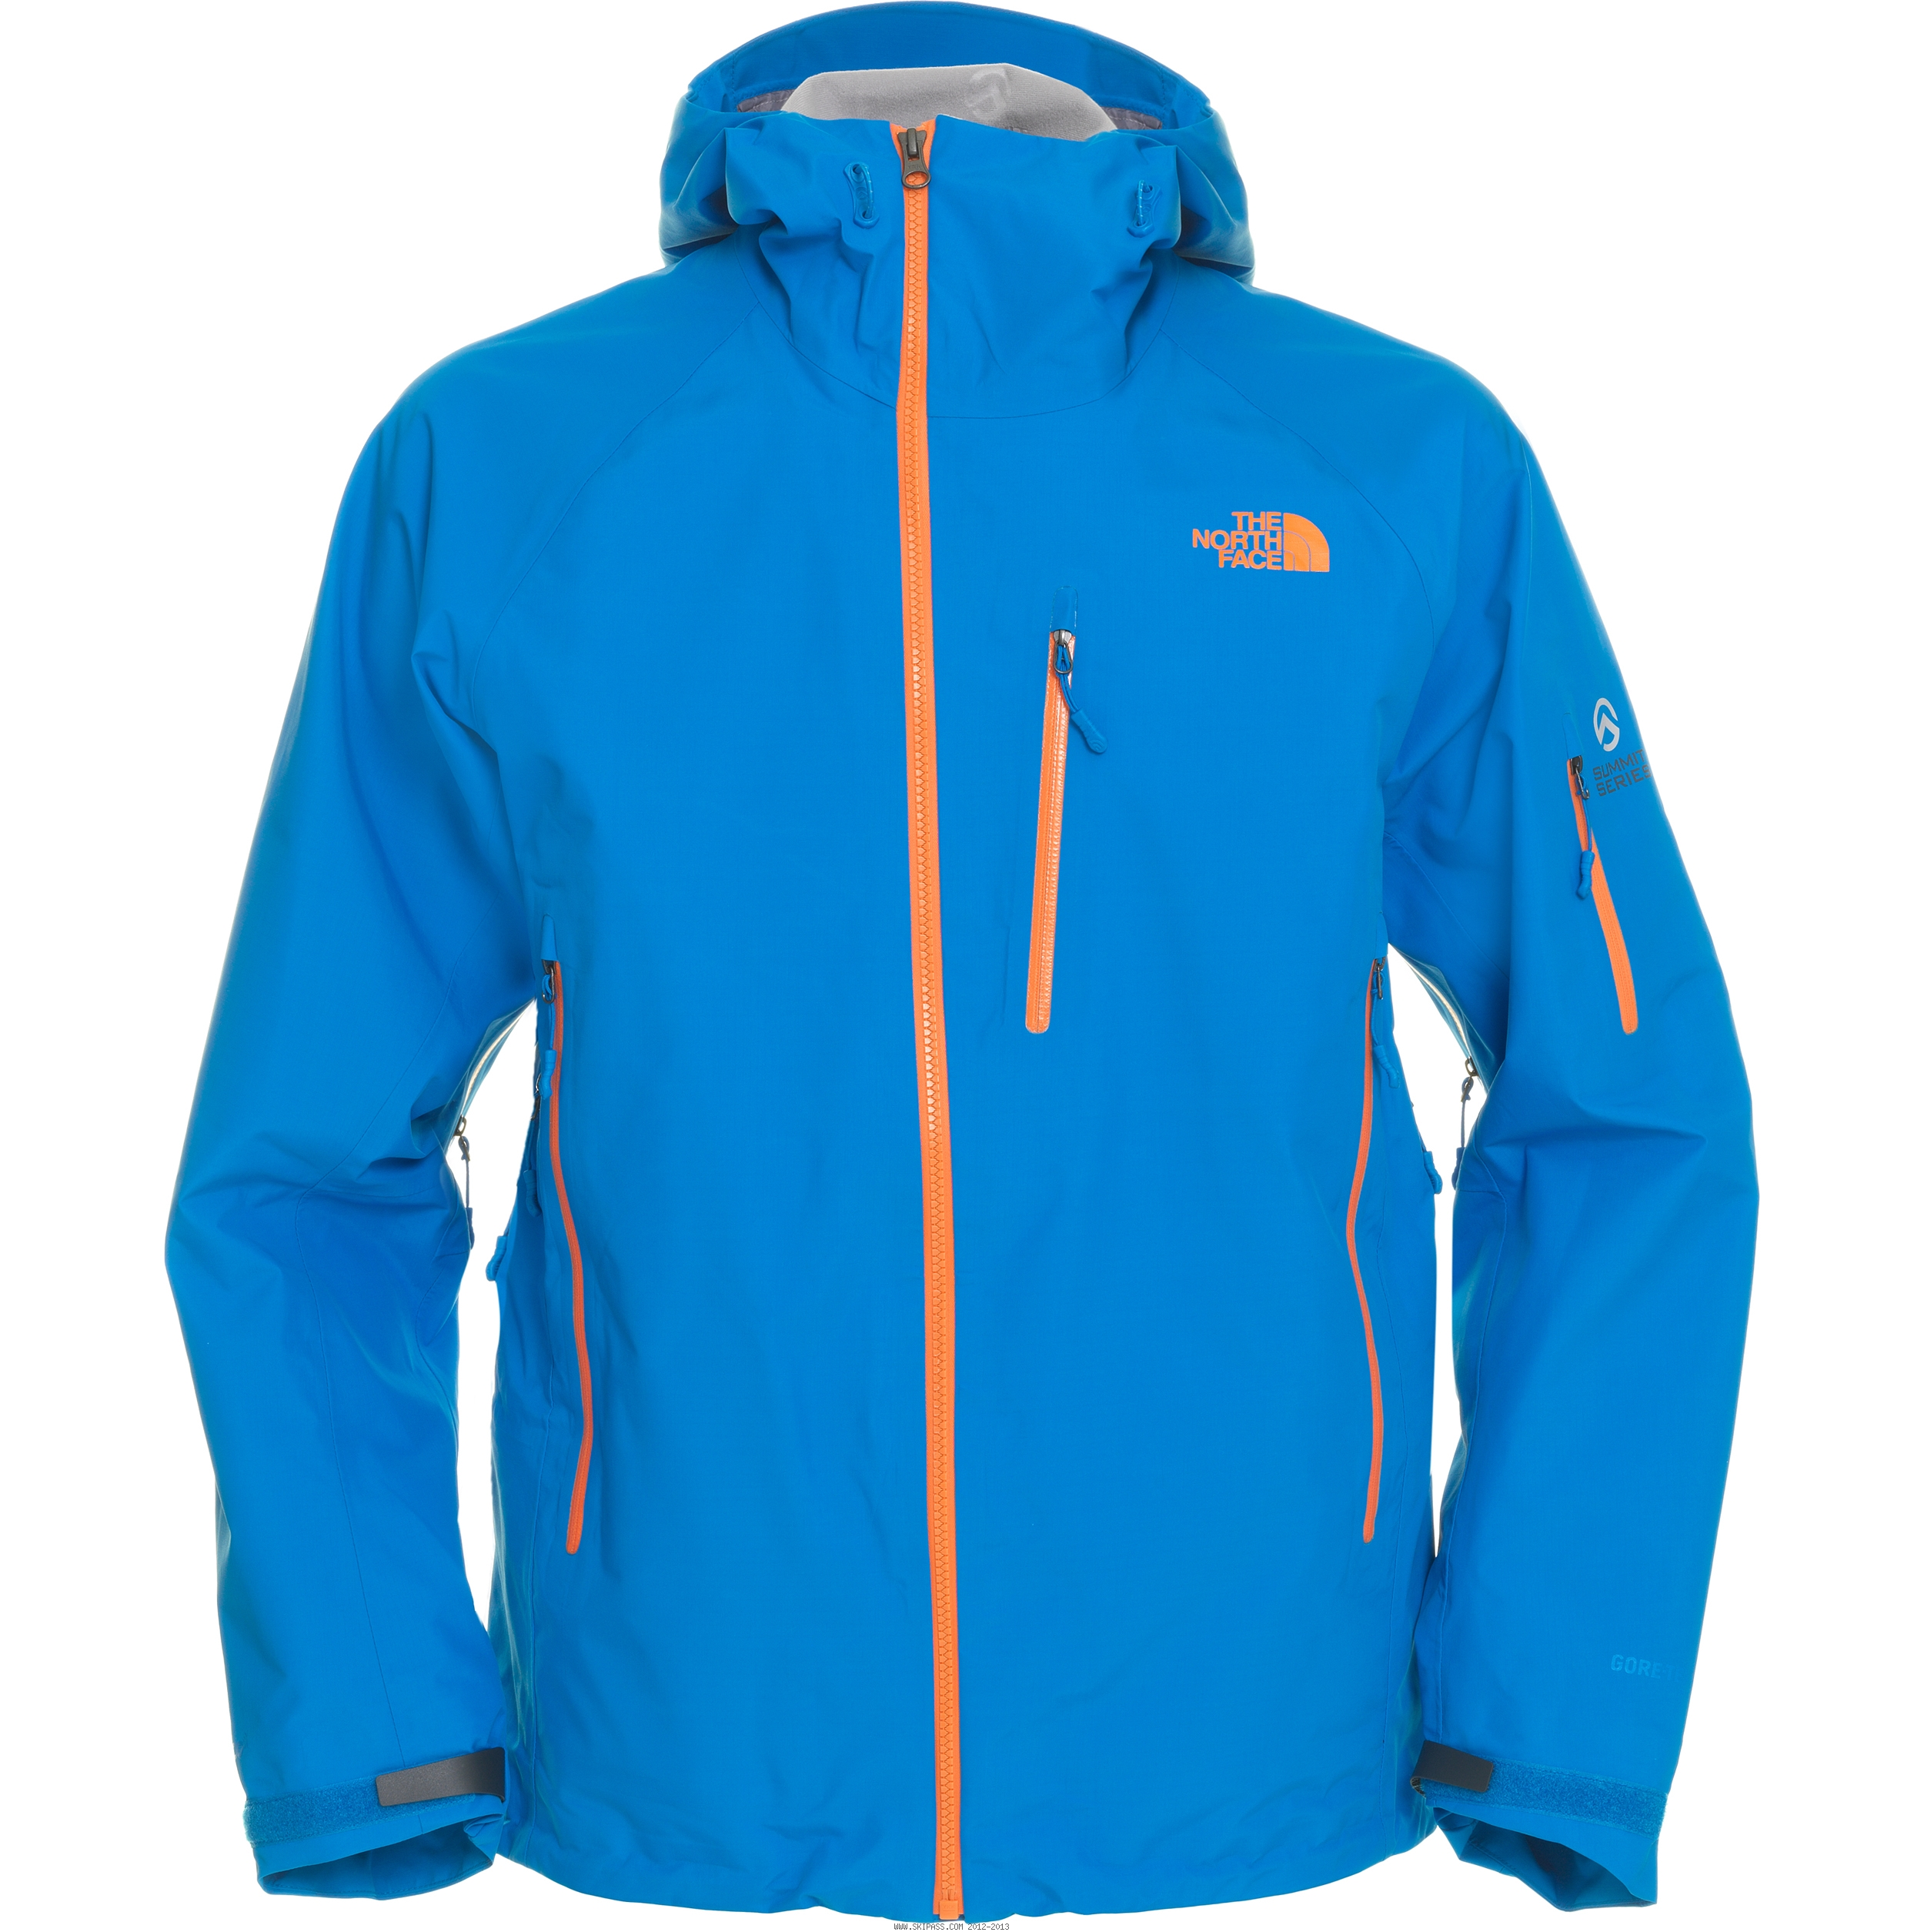 9d6251be90 The North Face - Enzo 2013